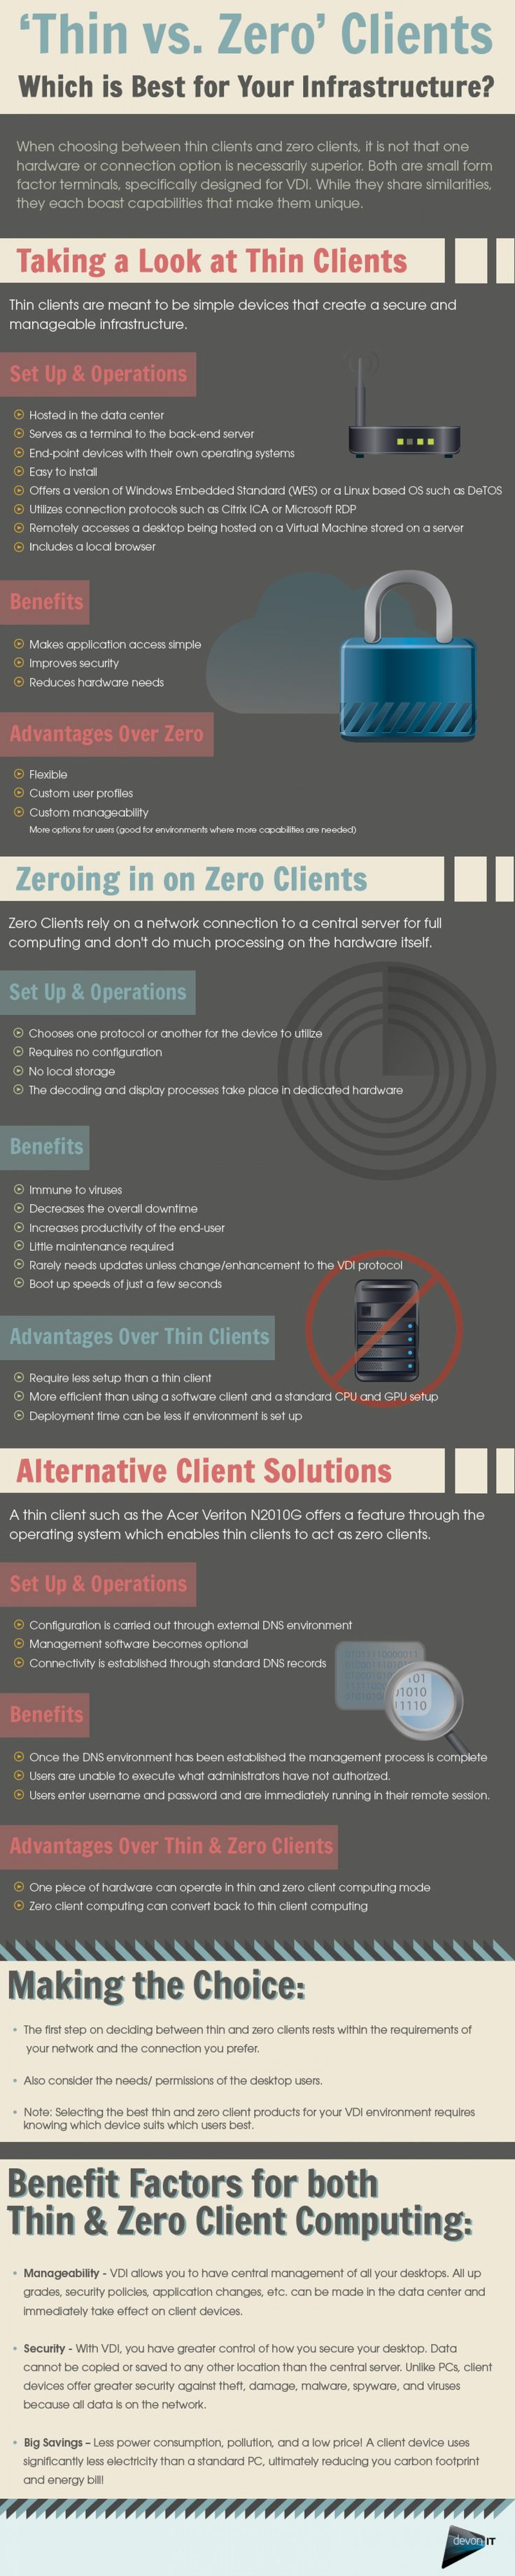 best images about resources beginner networking thin client vs zero client infographic